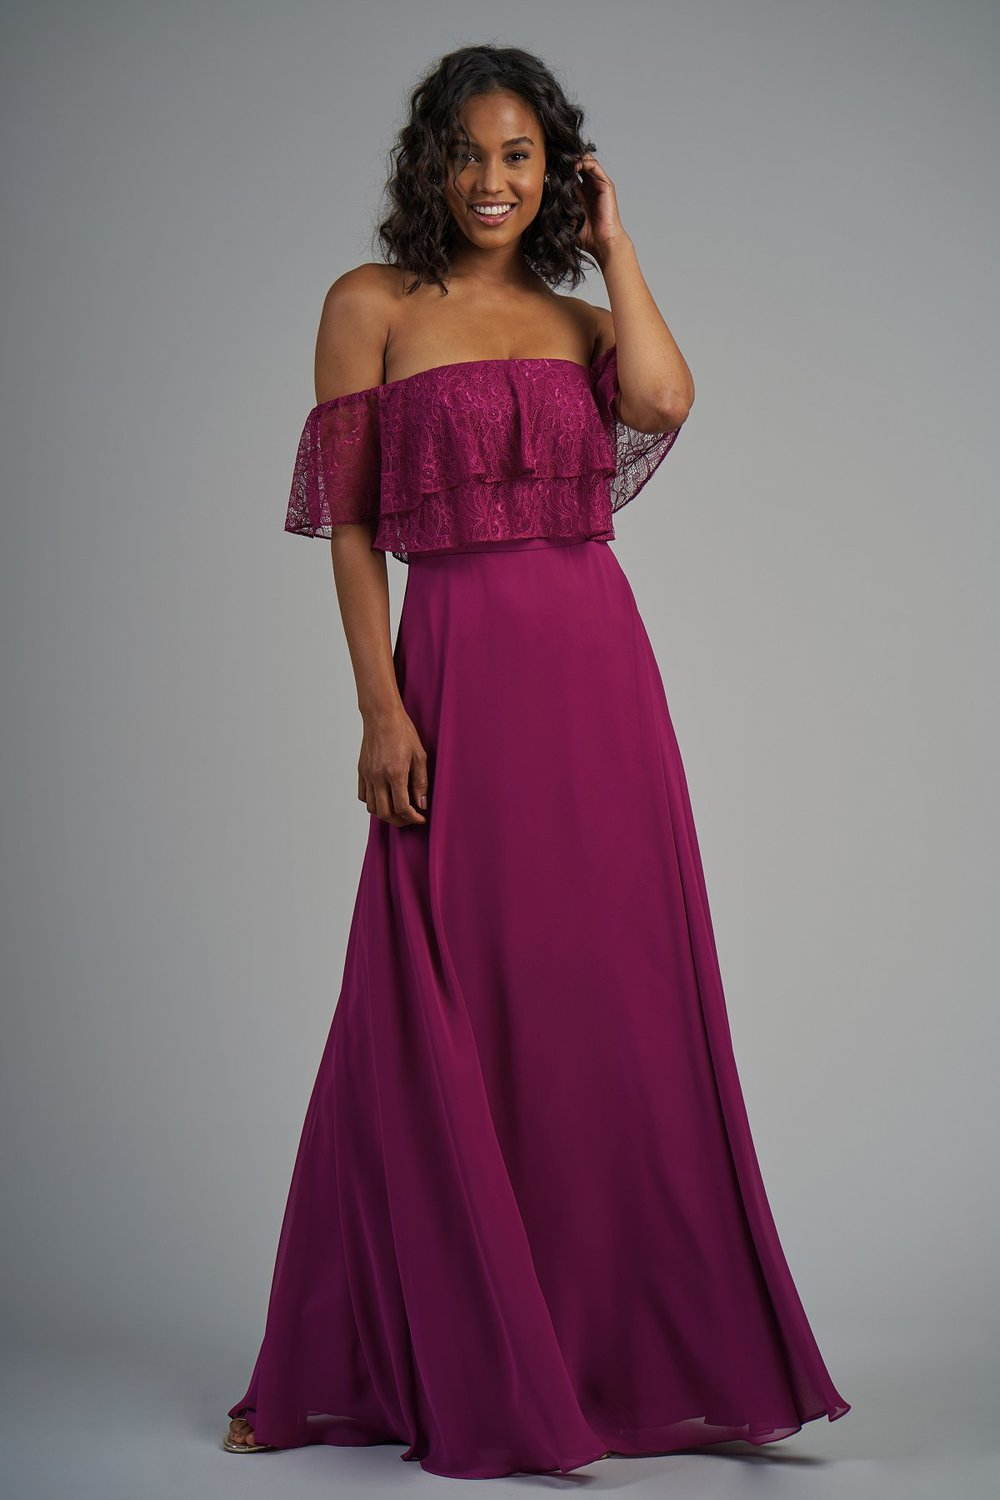 B213013 -  Beautiful lace and poly chiffon floor length bridesmaid dress with a strapless neckline and short lace fabric that fits around the arms. Layered flowy bodice and flowy skirt to complete the look.    Available in 22 colors